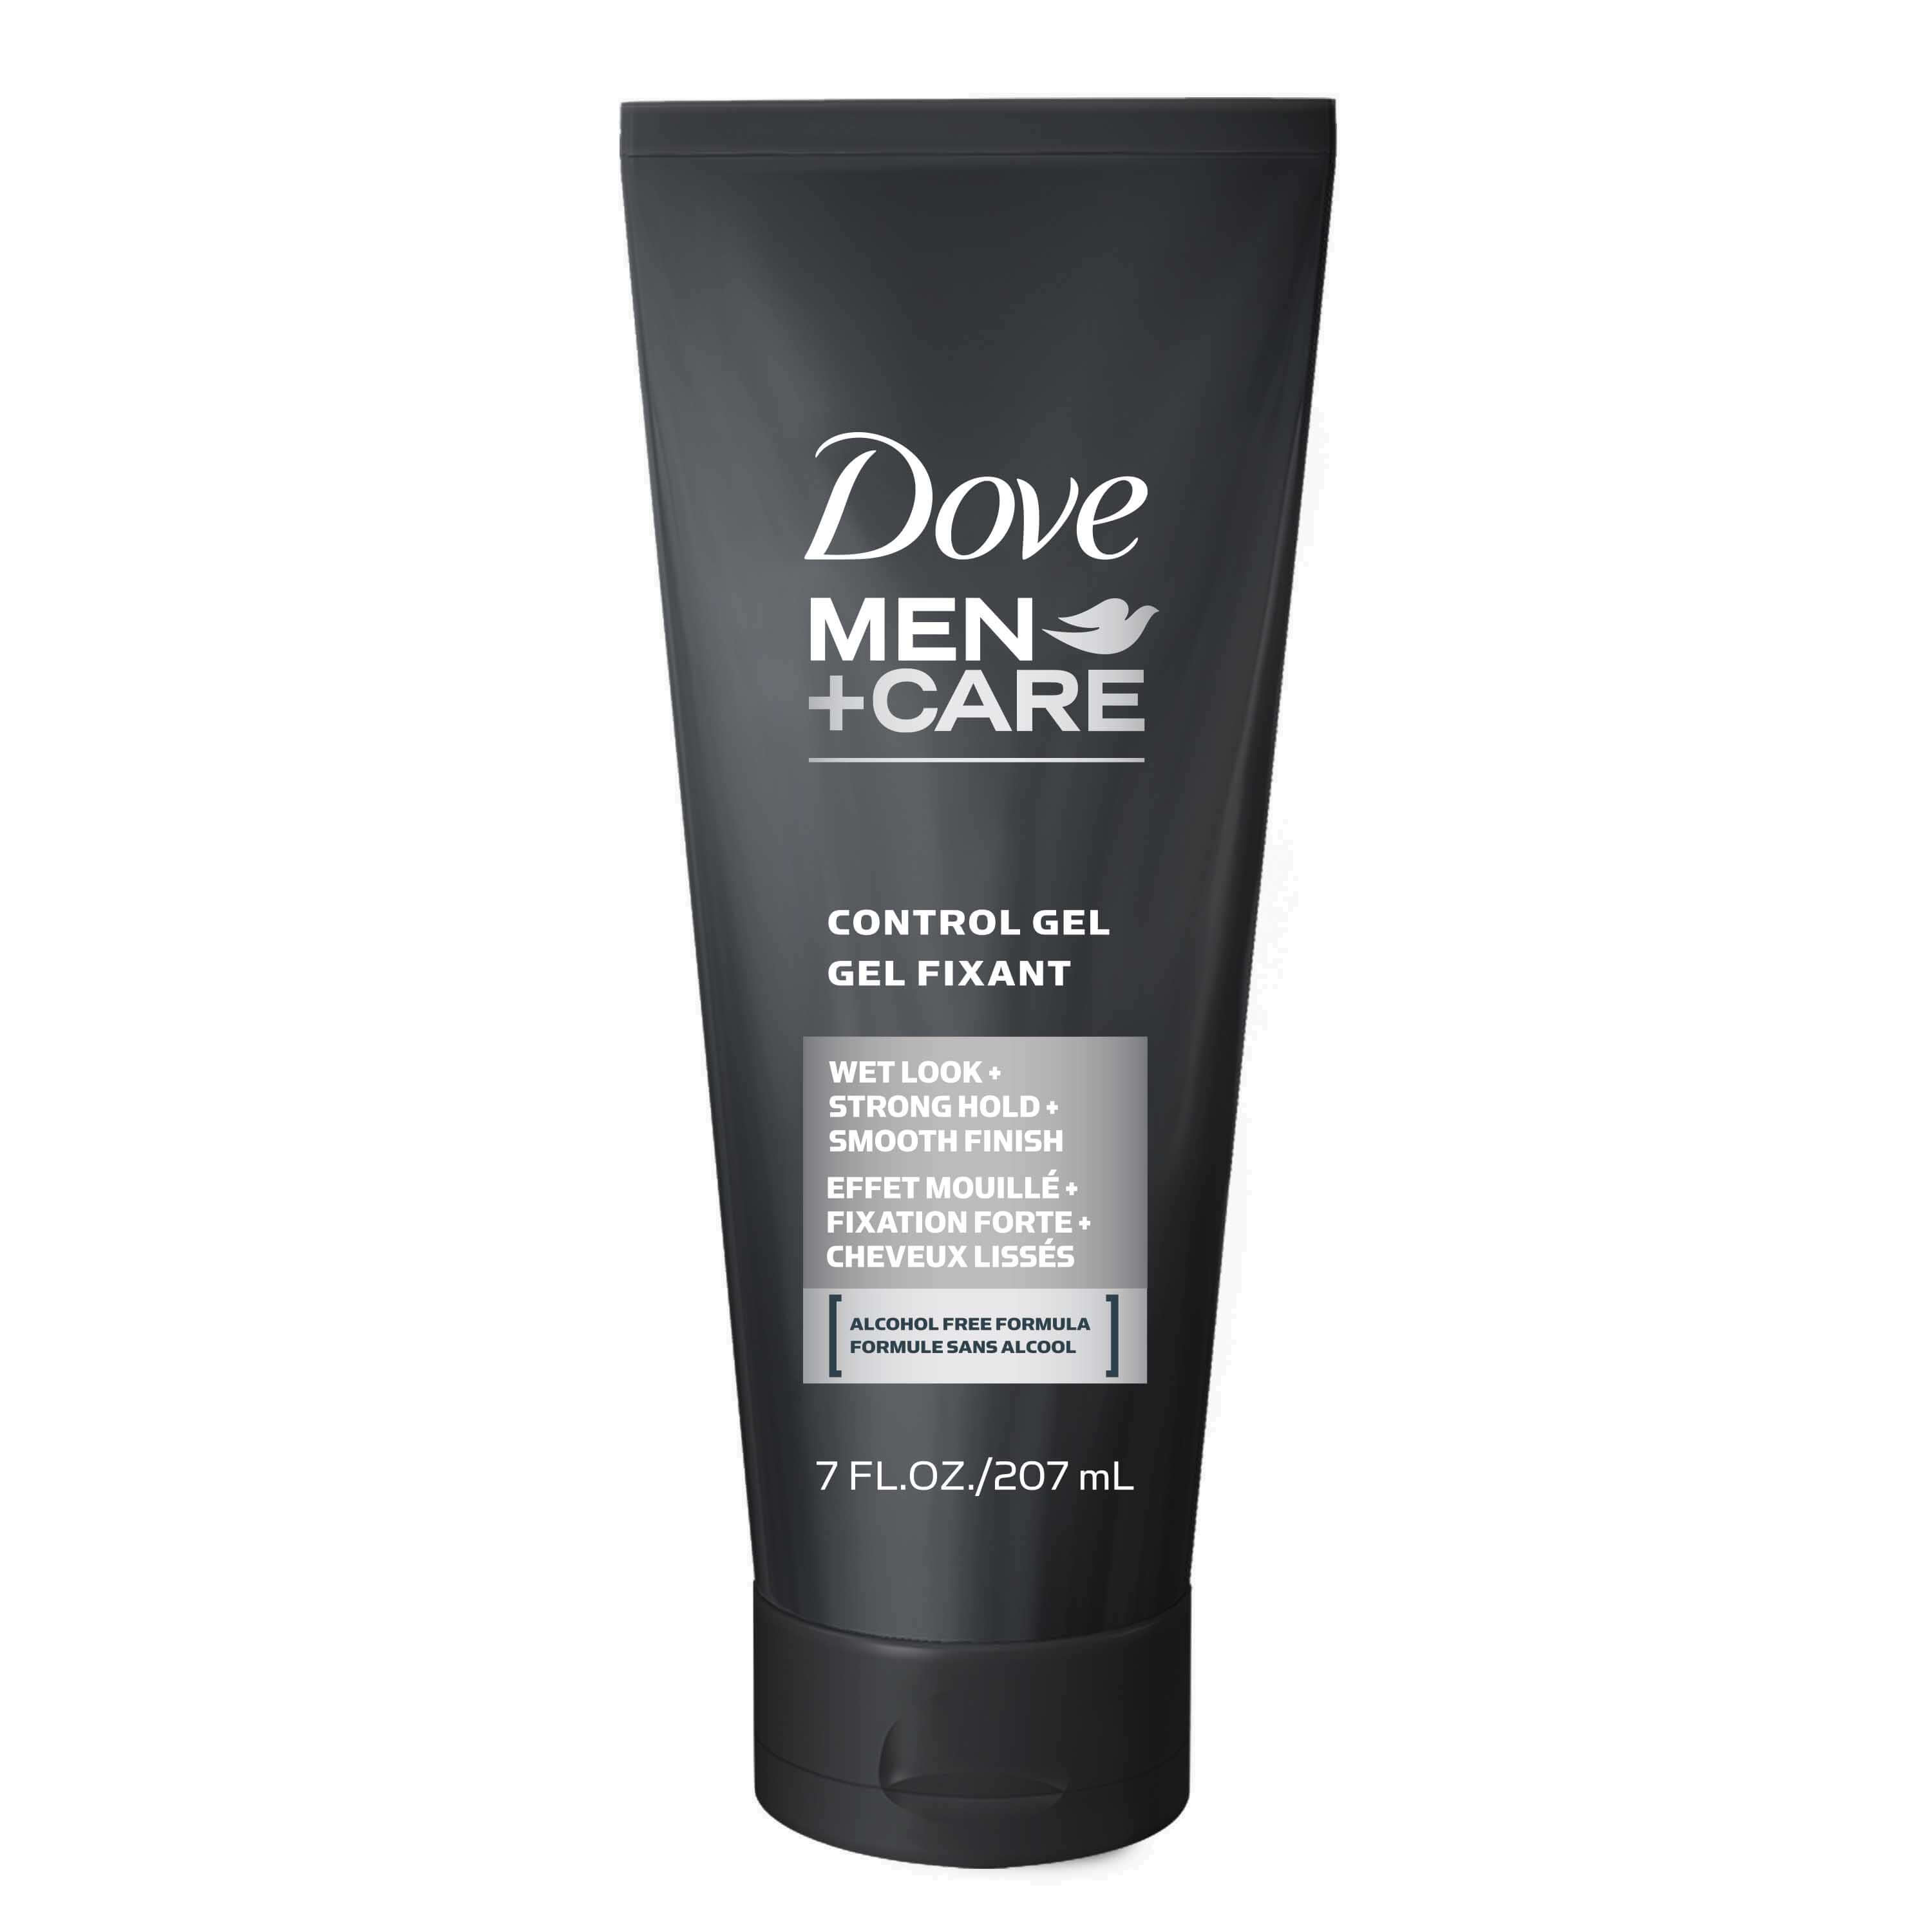 DOVE MEN+CARE CONTROL GEL